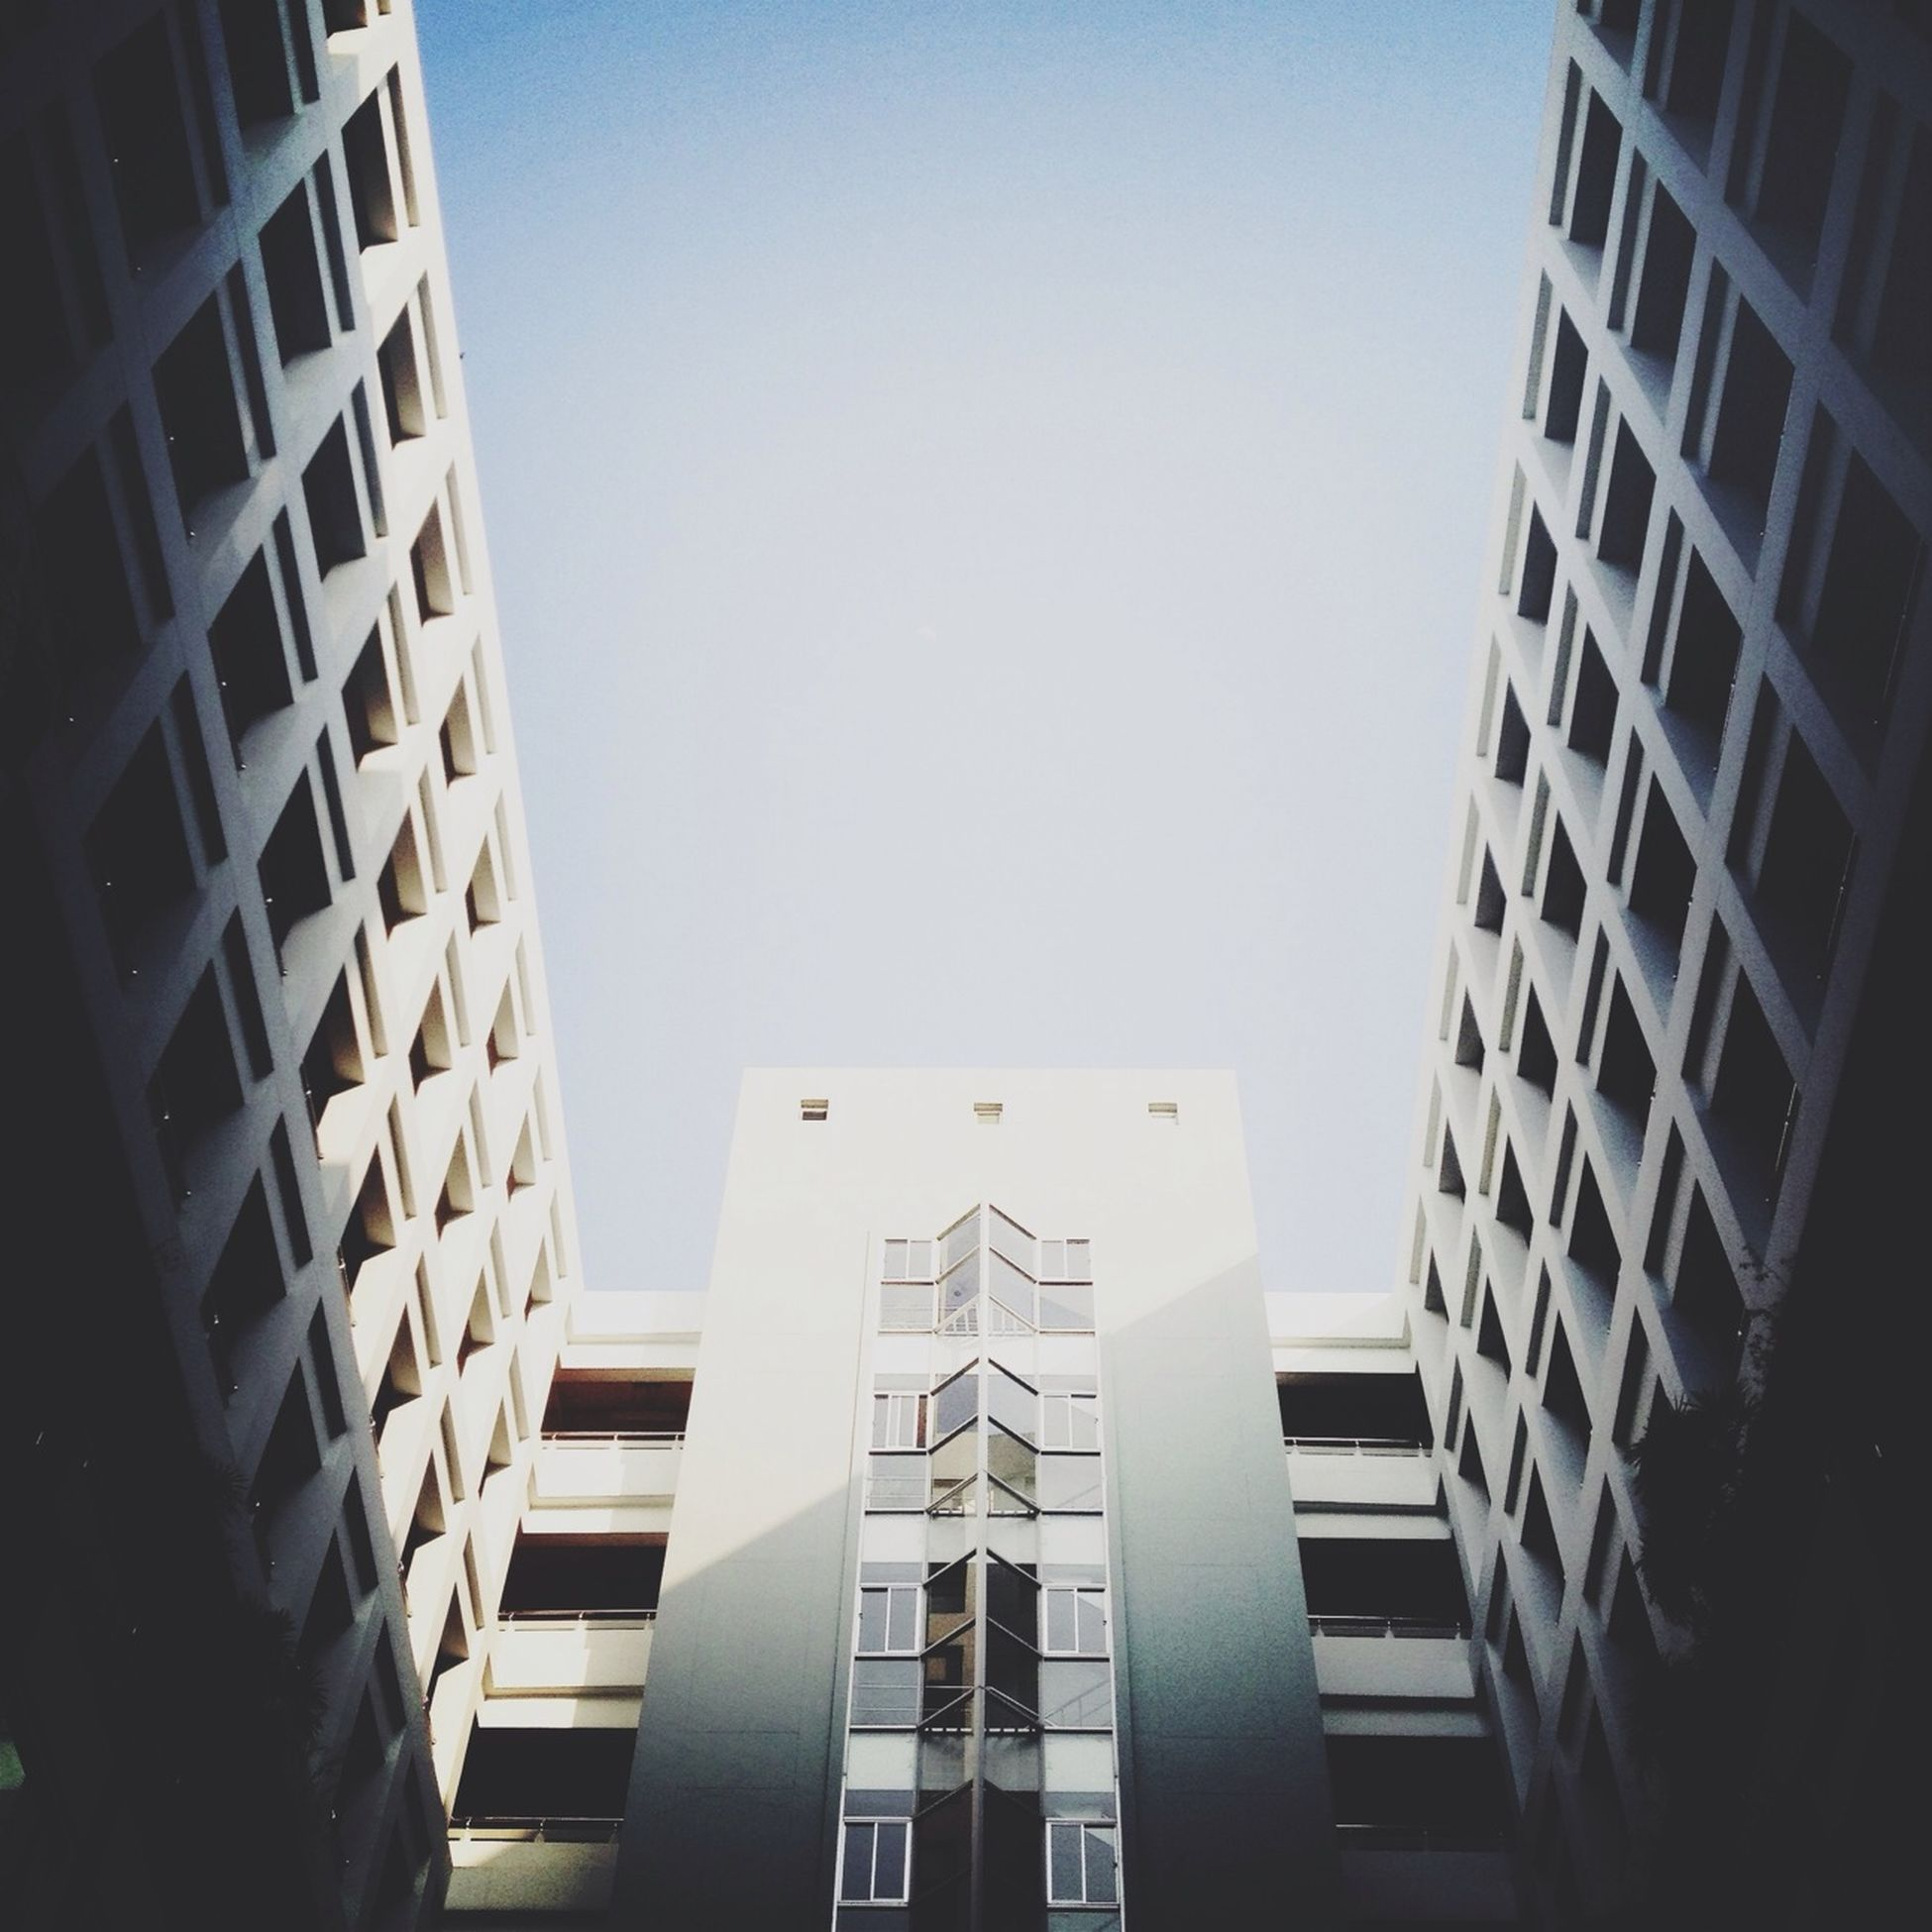 architecture, building exterior, building, window, residential structure, built structure, city, office building, residential building, modern, balcony, apartment, facade, low angle view, city life, fish-eye lens, perspective, composition, modern, exterior, urban, development, city life